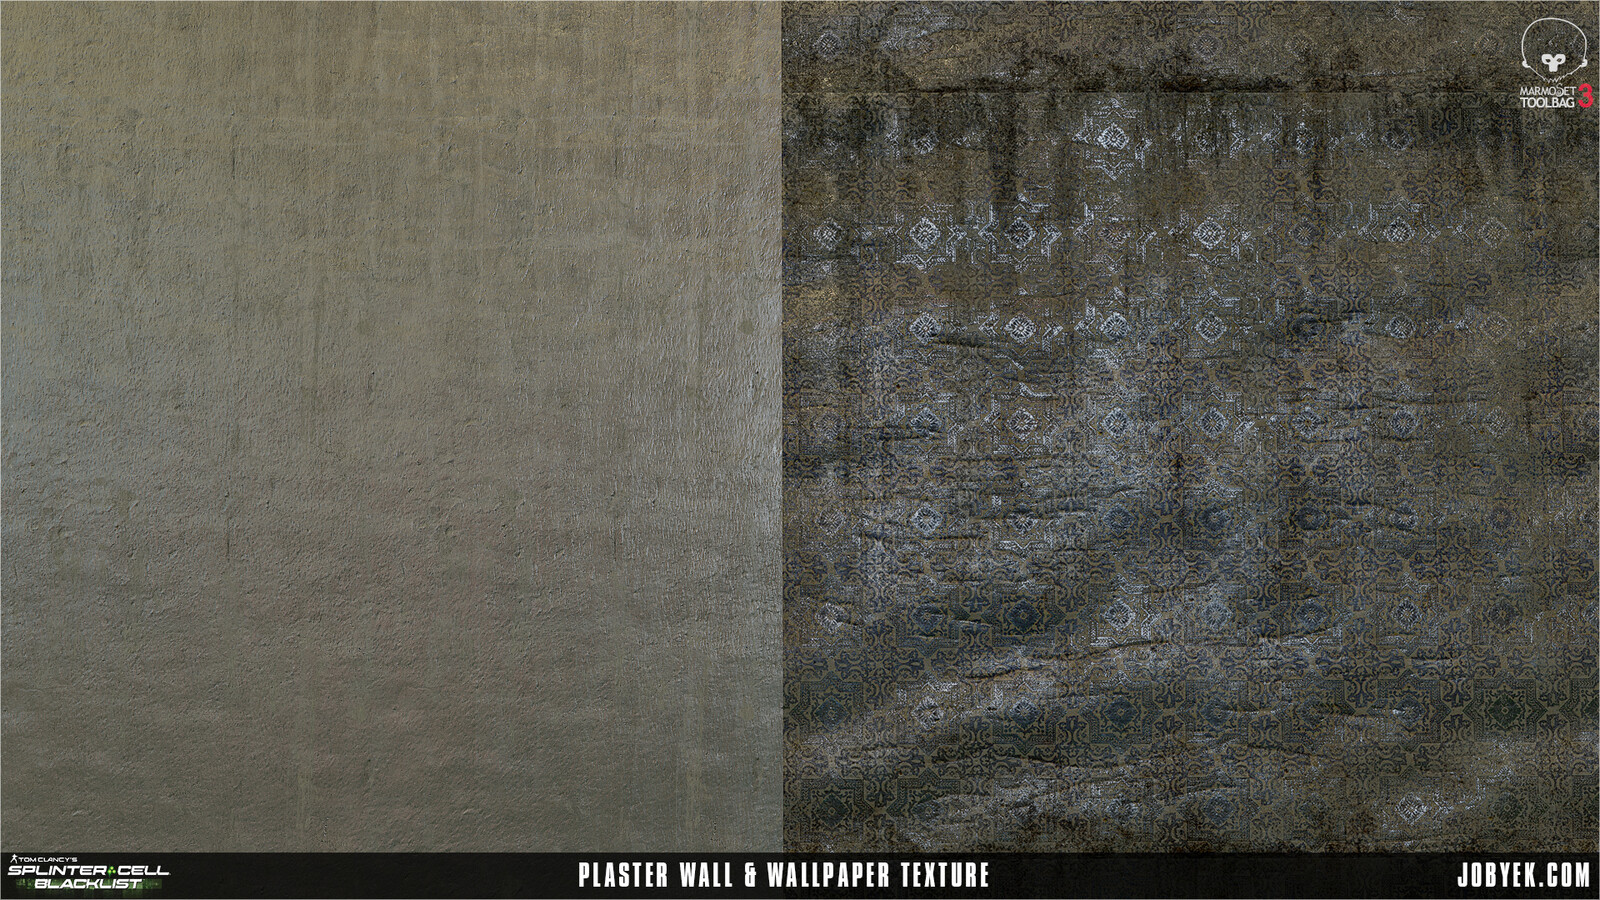 Apartments wall & wallpaper textures